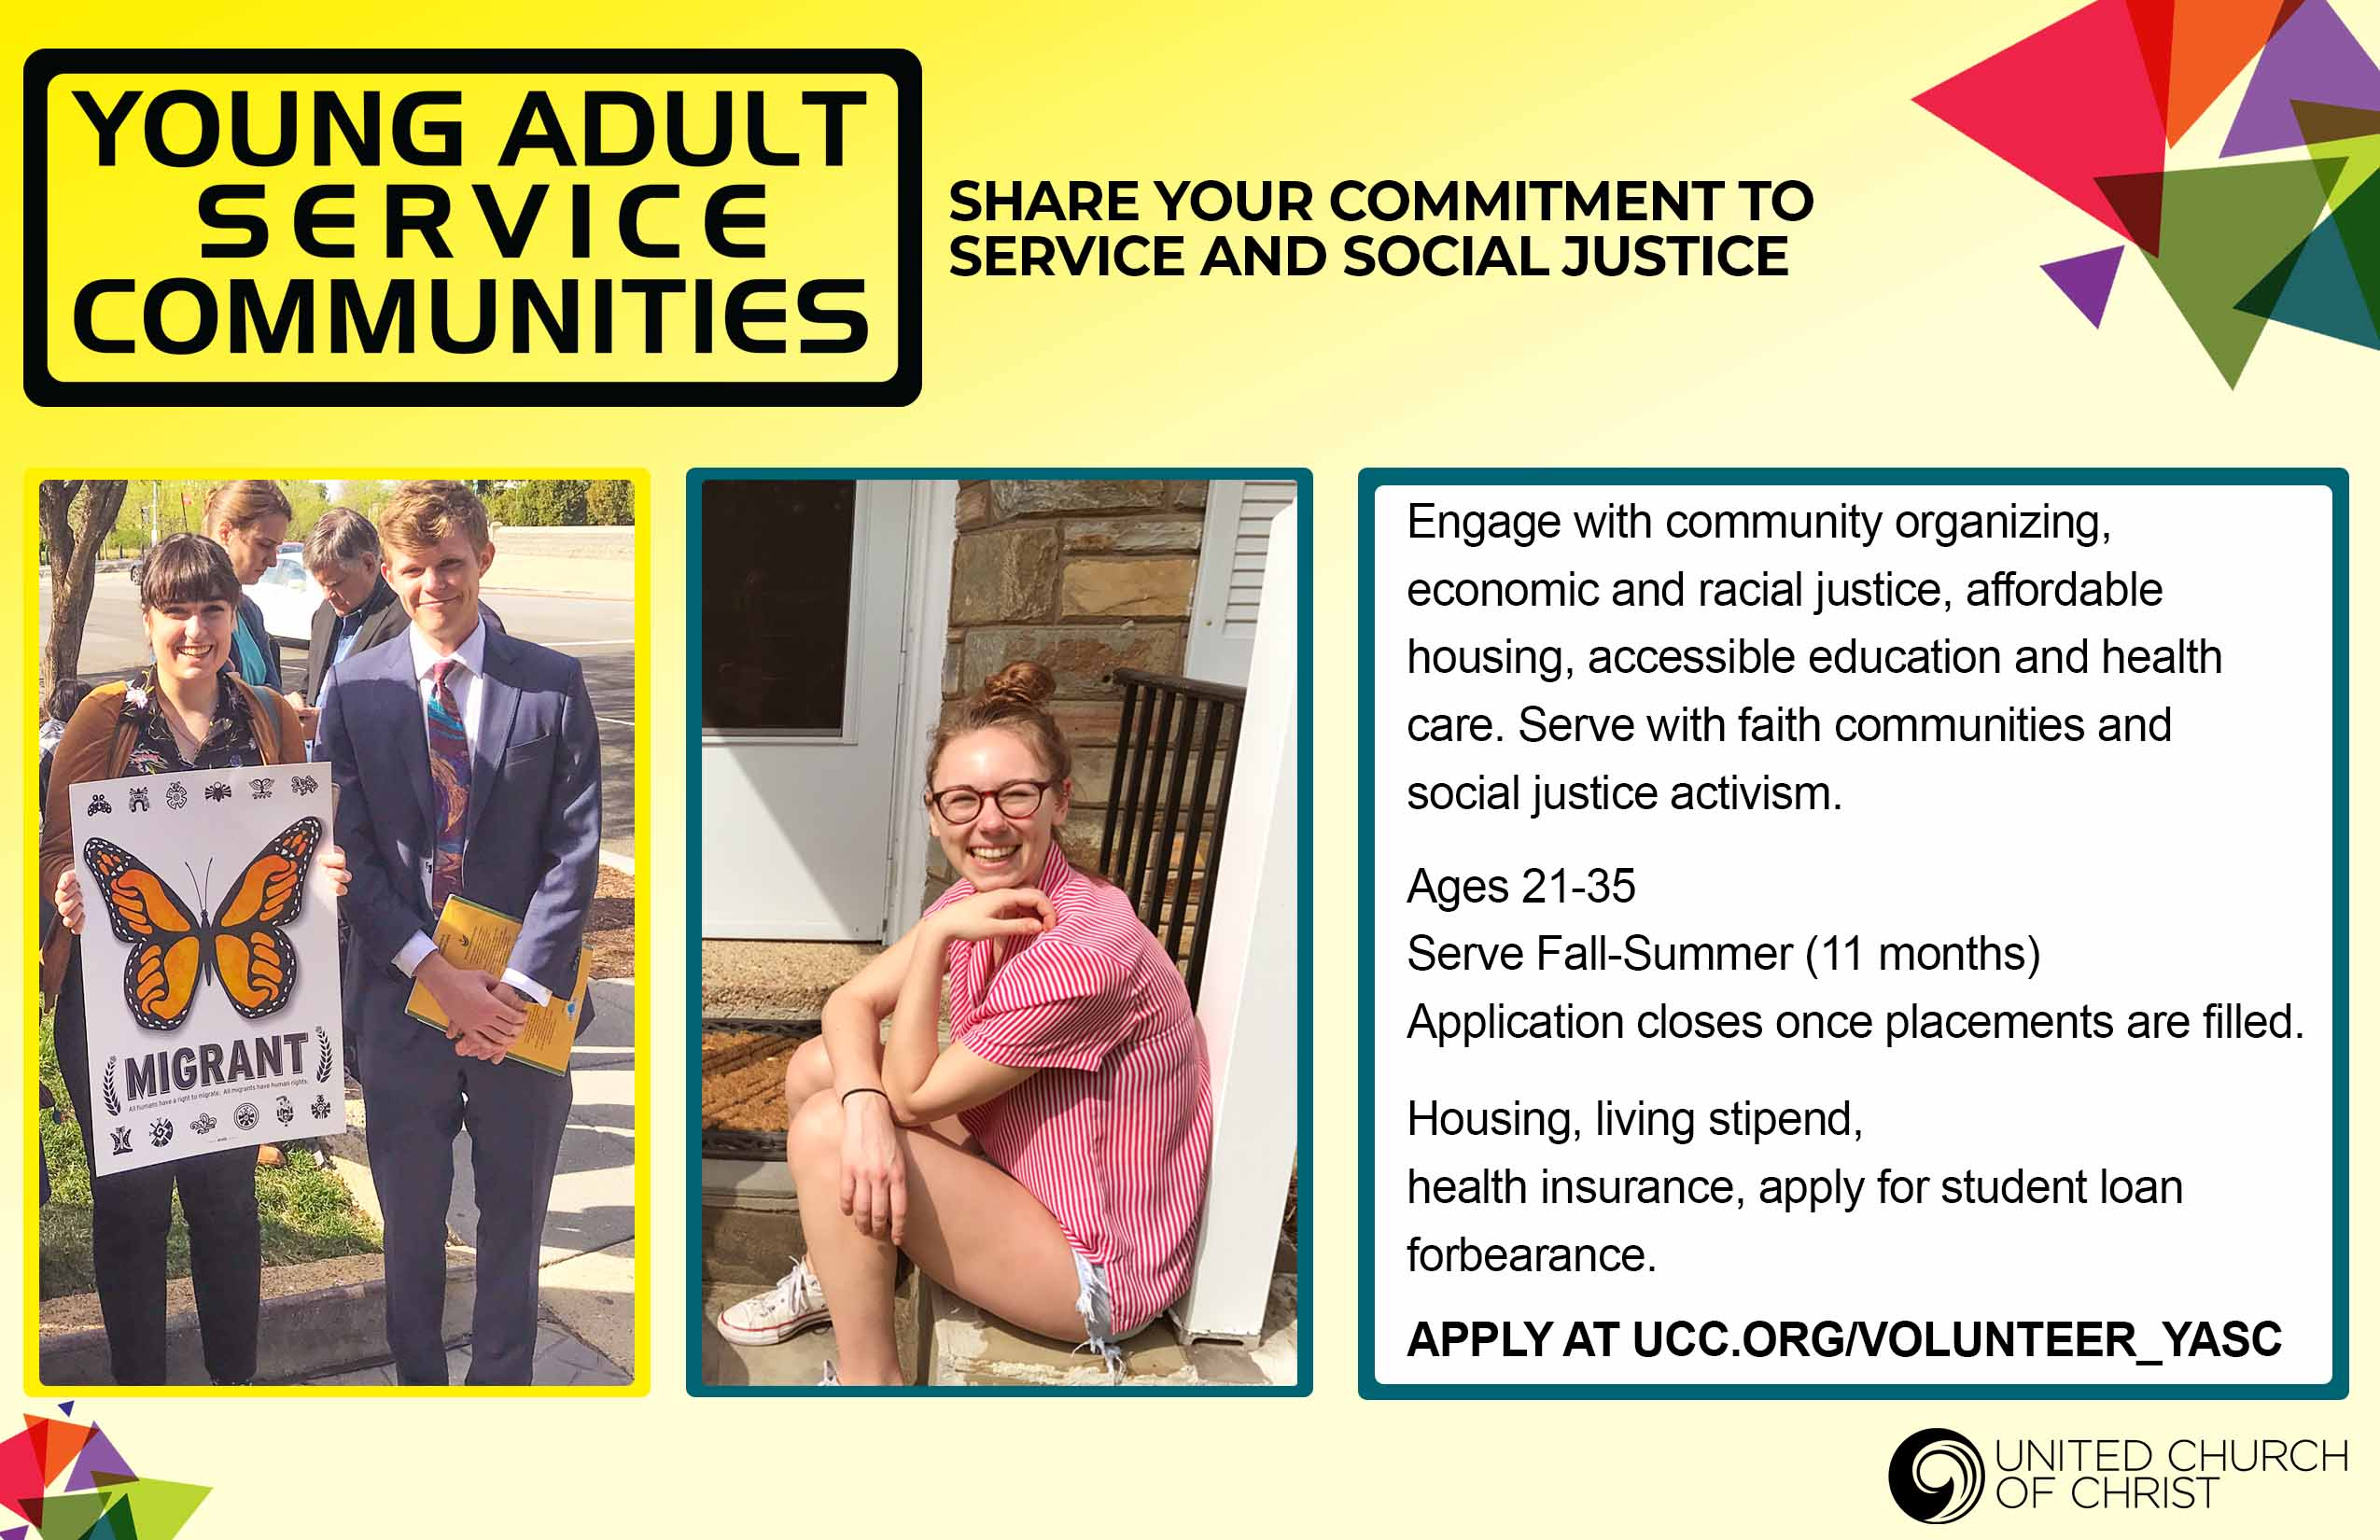 Young Adult Service Communities (National Network)